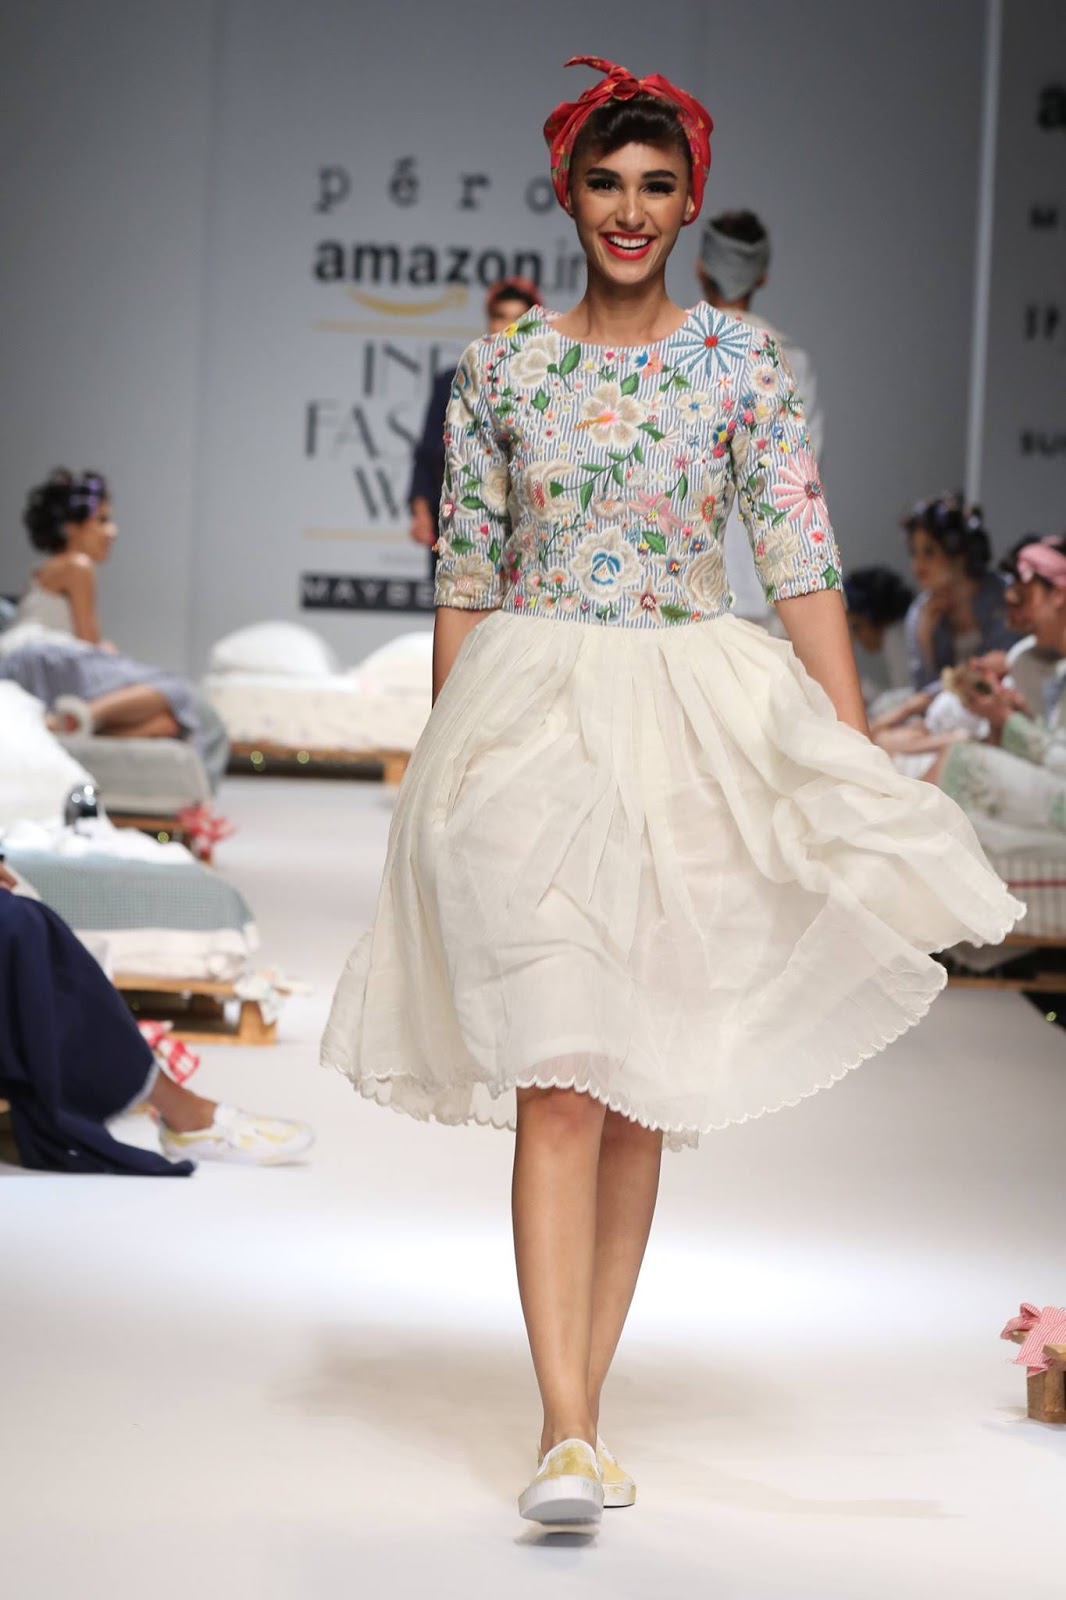 This Collection Was In Collaboration With Princess Pea Which According To Aneeth Arora Also Symbolises The Alter Ego Of An Indian Woman